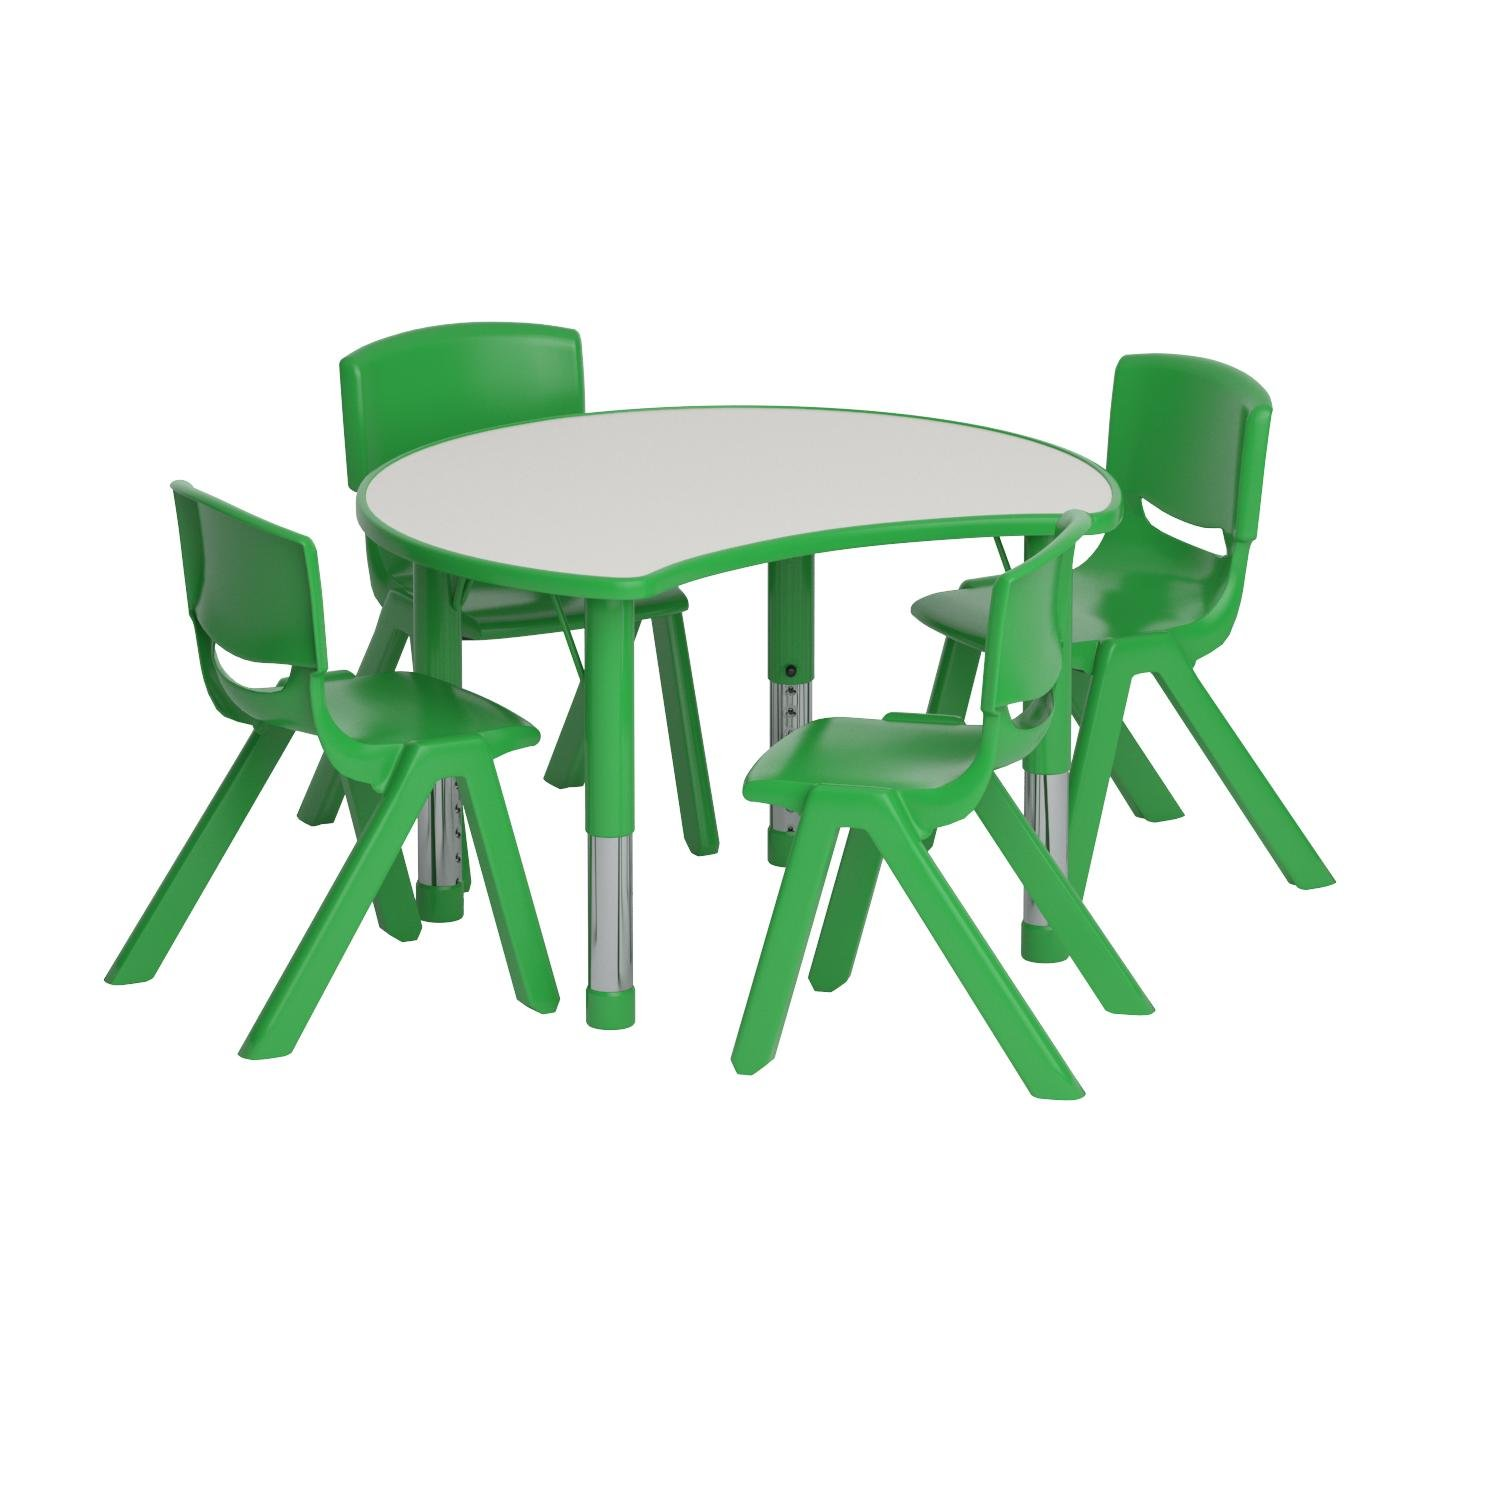 Flash Furniture 25.125''W x 35.5''L Cutout Circle Green Plastic Height Adjustable Activity Table Set with 4 Chairs